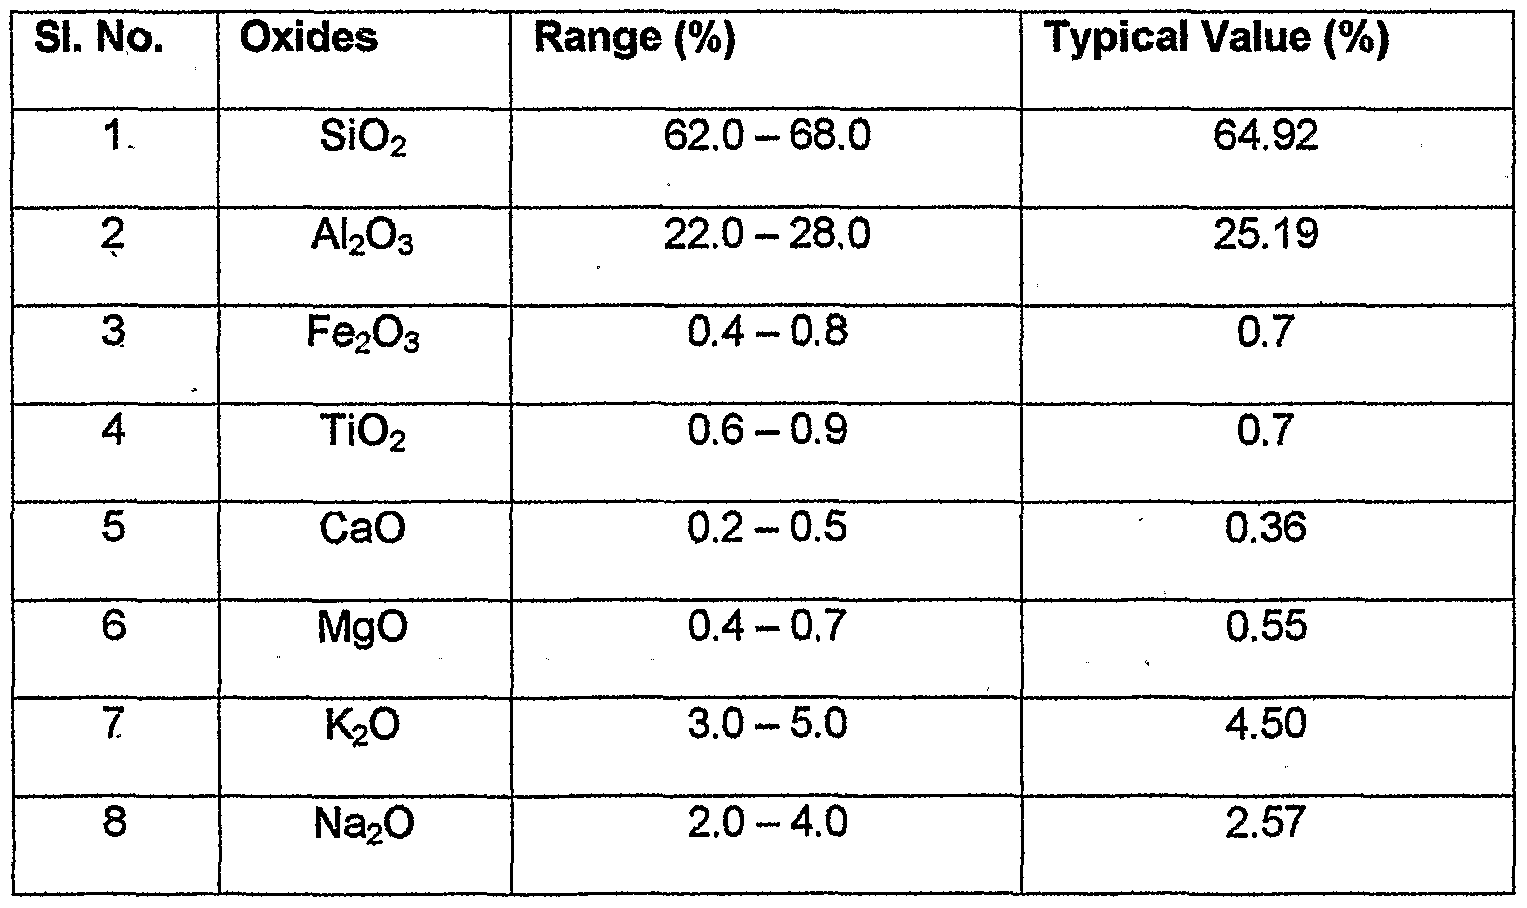 Chemical composition of ceramic tiles